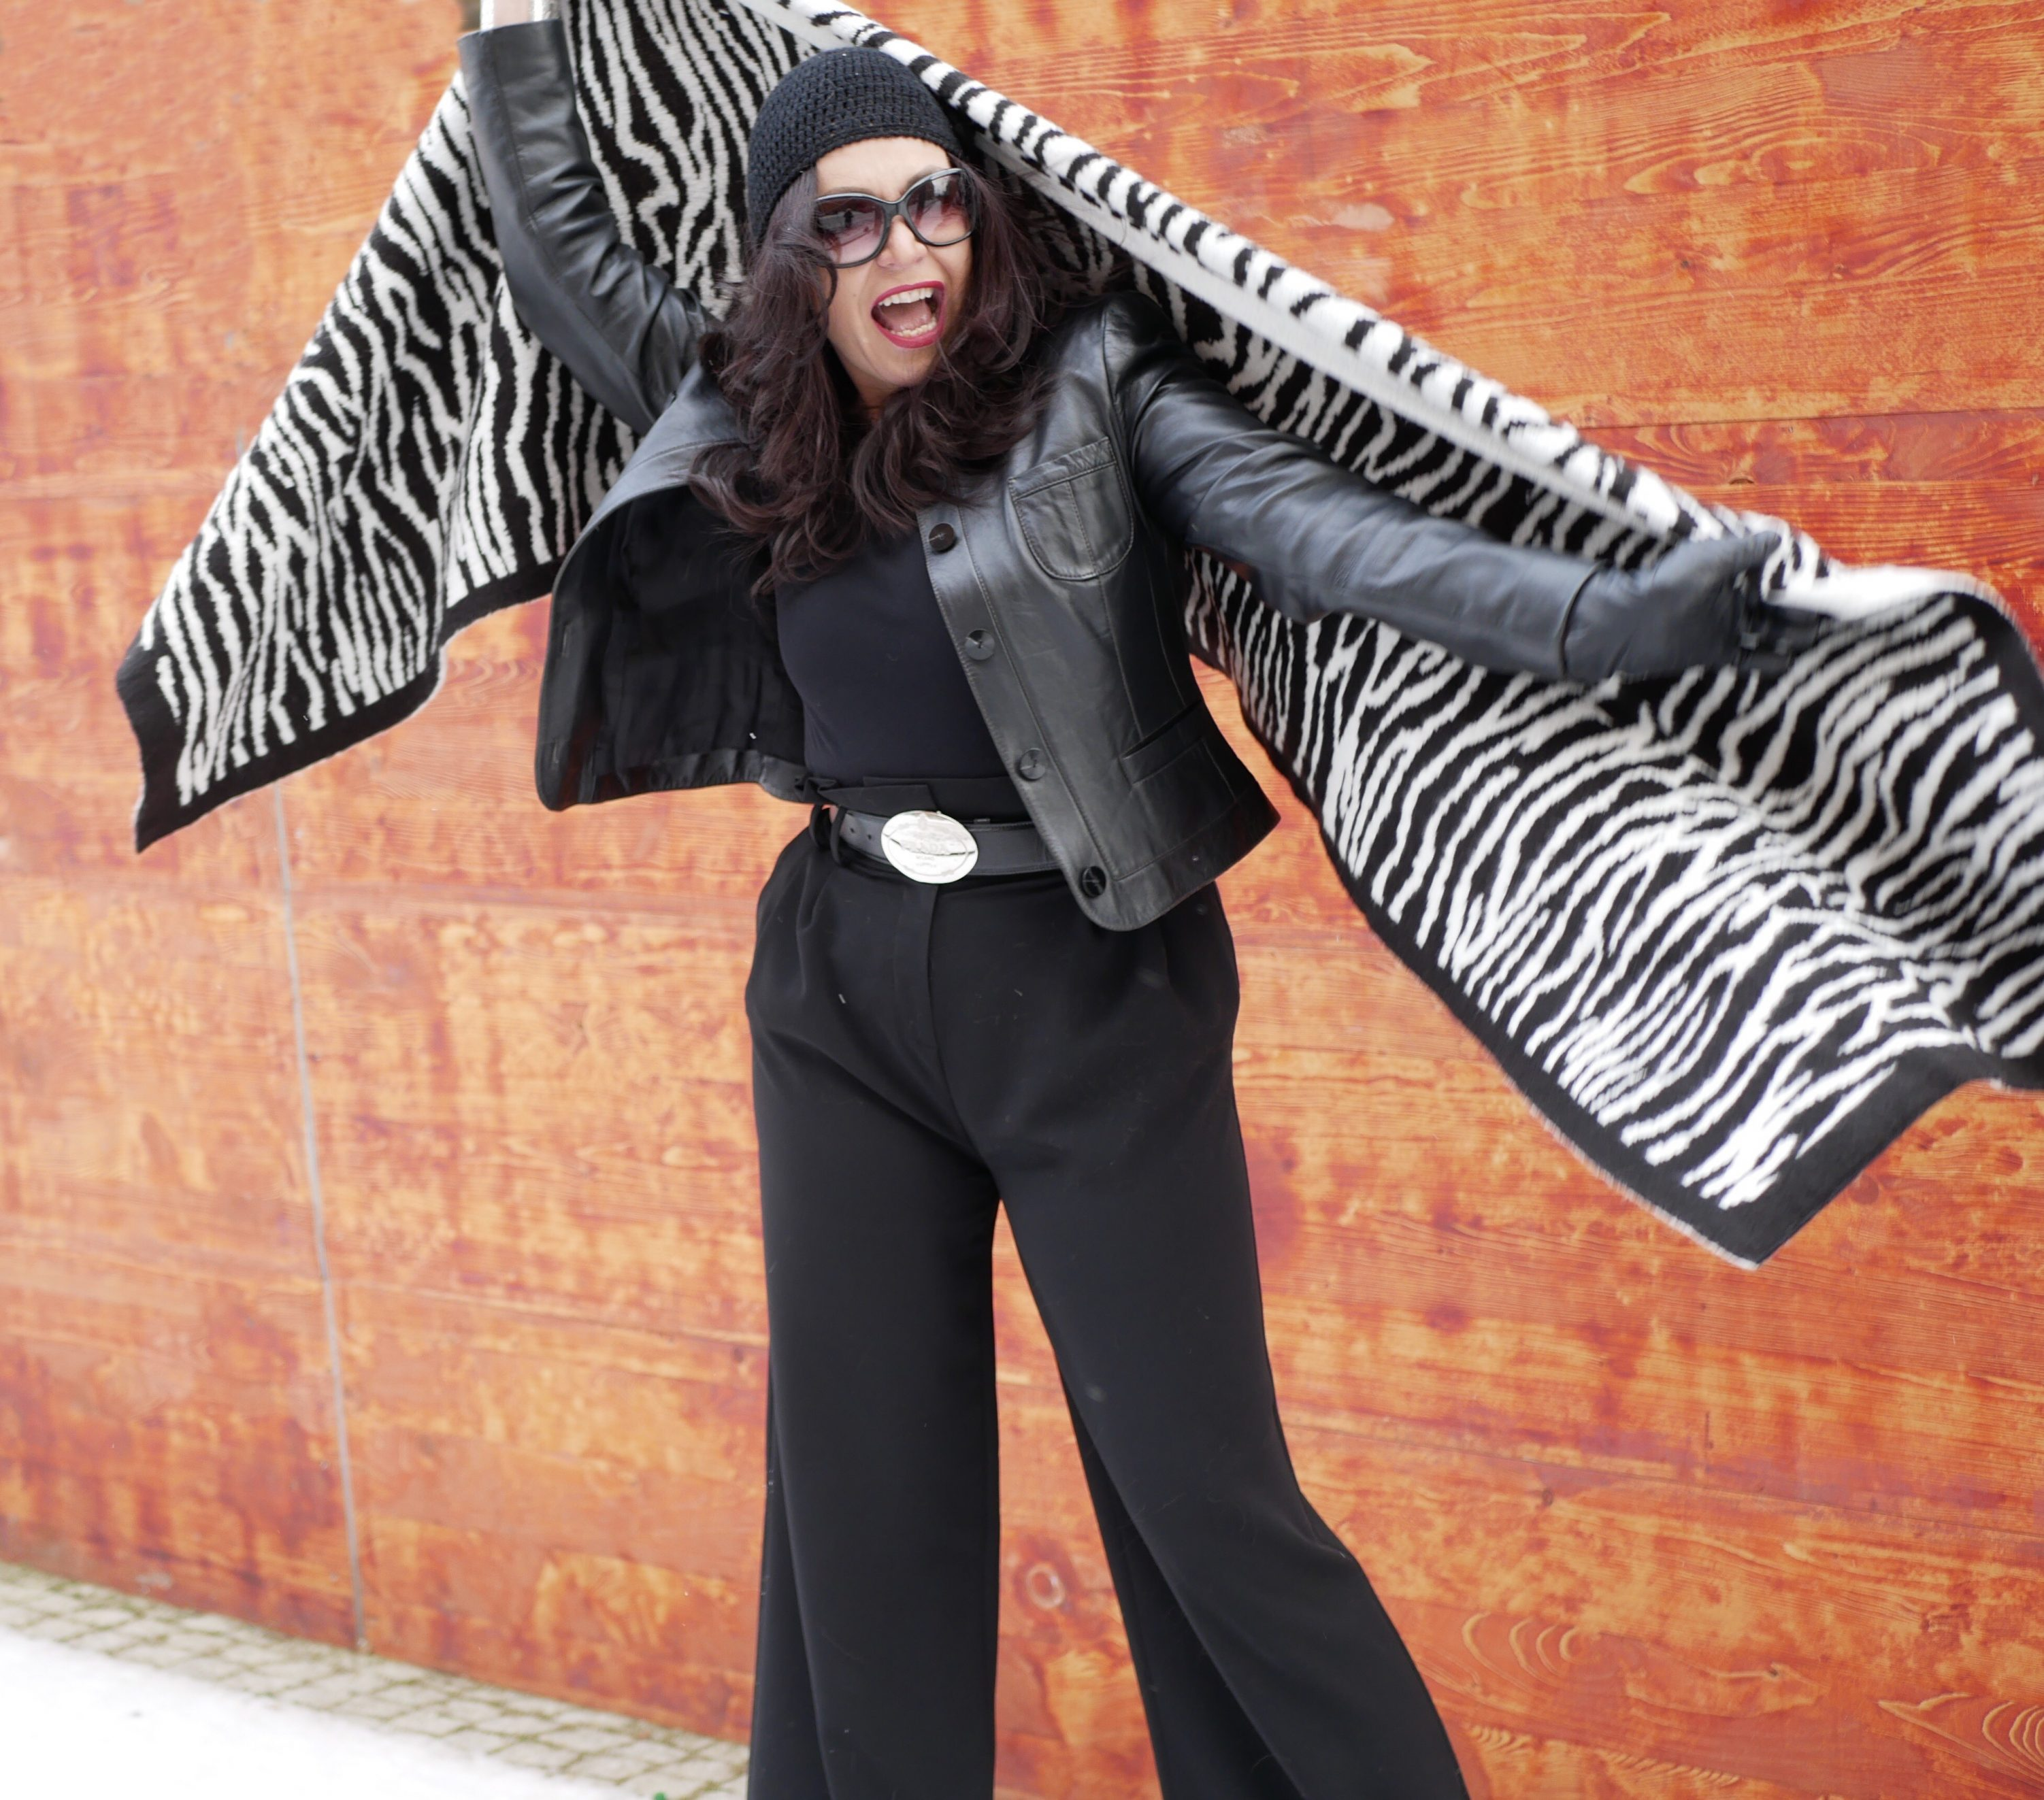 Zebra print scarf Zara, Hallhuber pants, Prada belt, Prada eyewear, eyewearblogger, black and white, winterstyle, wintertrends, Fashionblog Augsburg, style for ladies, fancy outfit, streetstyle in winter, aldo castagna boots, bestage, over50fashionblogger